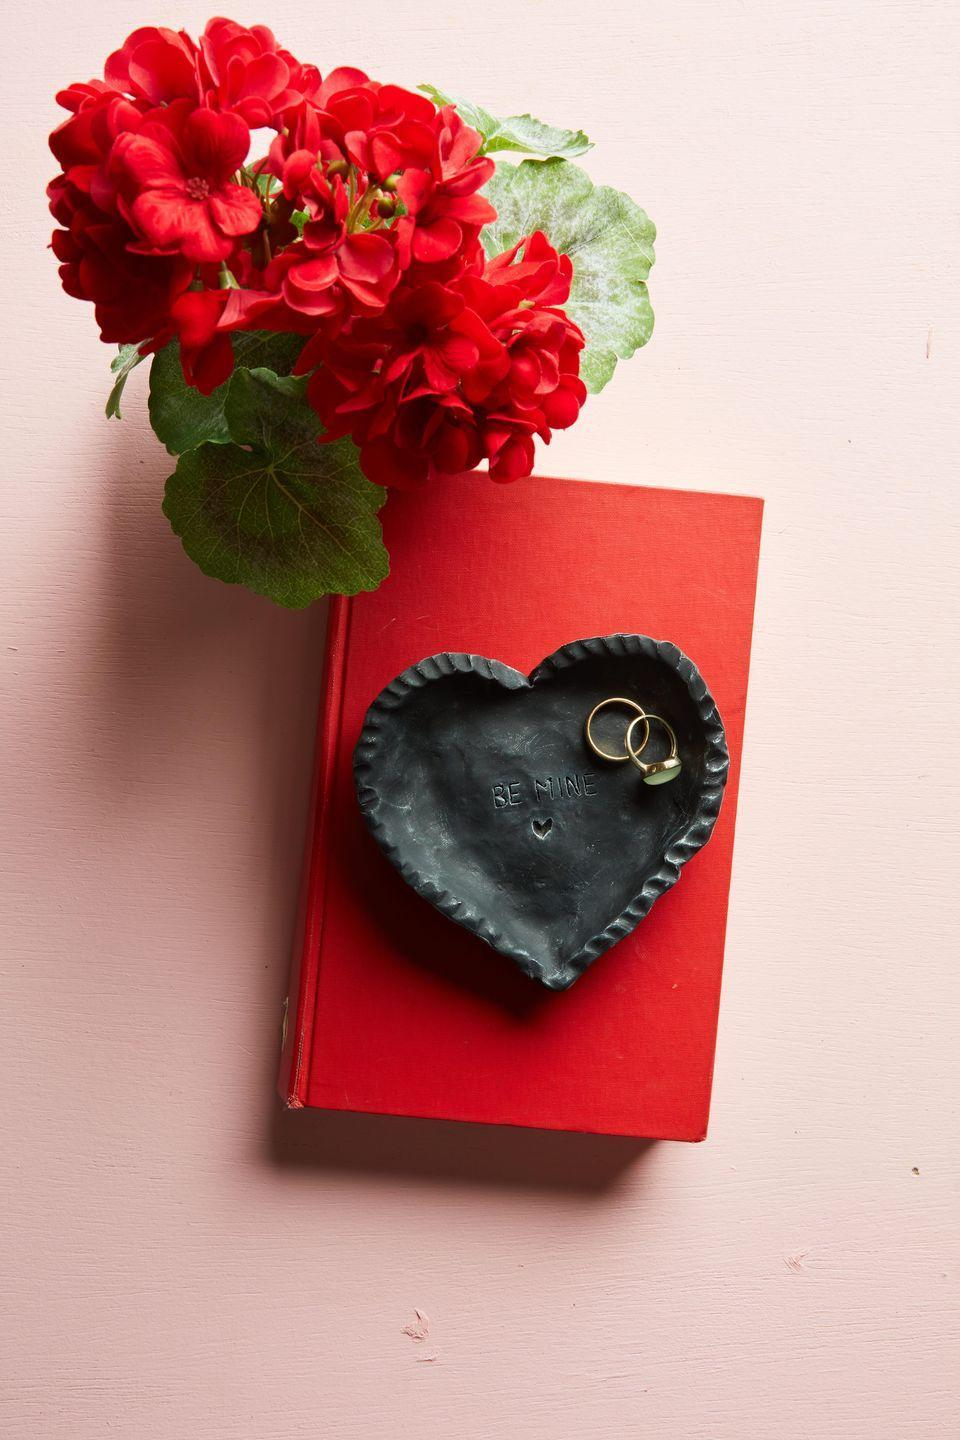 """<p>Ideal for holding rings or other jewelry, this DIY ring plate in simply fashioned from oven-baked clay and will remind that special someone how you feel about them every time they use it.<strong><br></strong></p><p><strong>To make: </strong>Shape modeling clay in a shallow heart-shaped plate. Add a decorative edge and etch a saying in the bottom of the plate with a skewer or sculpting tool. Bake as directed.</p><p><a class=""""link rapid-noclick-resp"""" href=""""https://www.amazon.com/POZEAN-Modeling-Sculpting-Accessories-Beginners/dp/B07XXWXBDP/ref=sr_1_1_sspa?tag=syn-yahoo-20&ascsubtag=%5Bartid%7C10050.g.2971%5Bsrc%7Cyahoo-us"""" rel=""""nofollow noopener"""" target=""""_blank"""" data-ylk=""""slk:SHOP MODELING CLAY"""">SHOP MODELING CLAY</a></p>"""